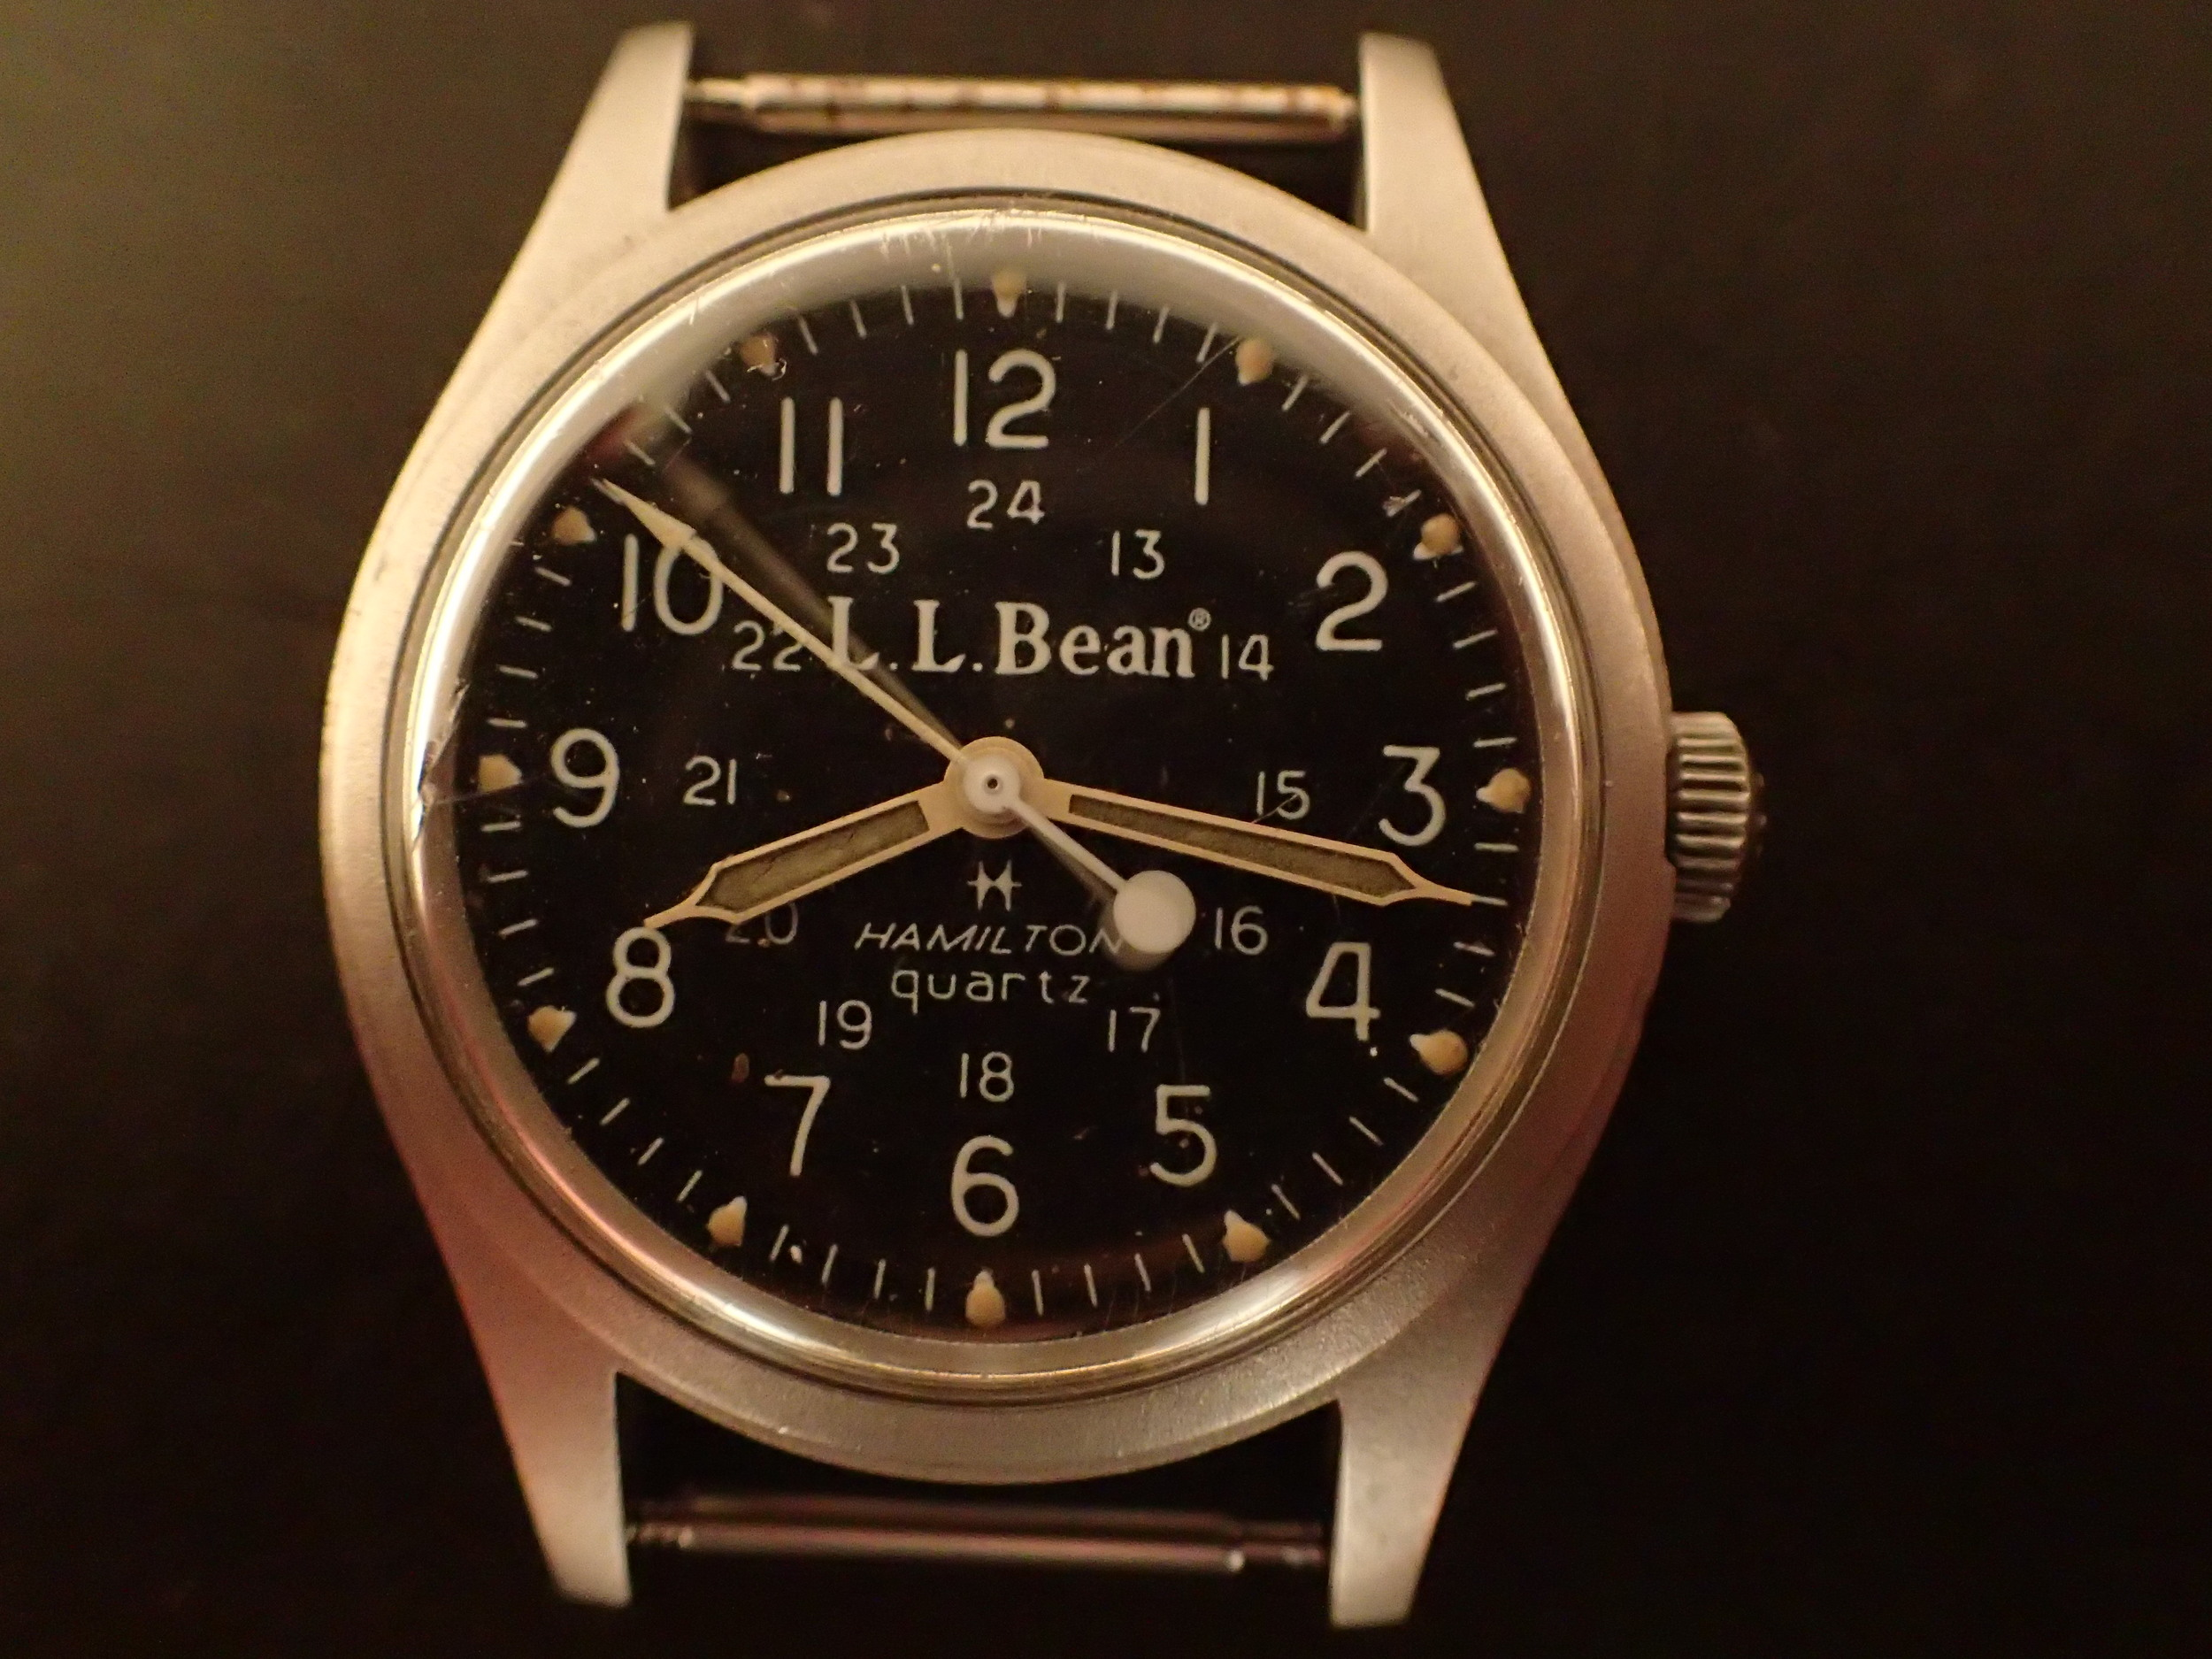 Hamilton/LL Bean quartz movement 9219.  My camera shutter caught the second hand changing.